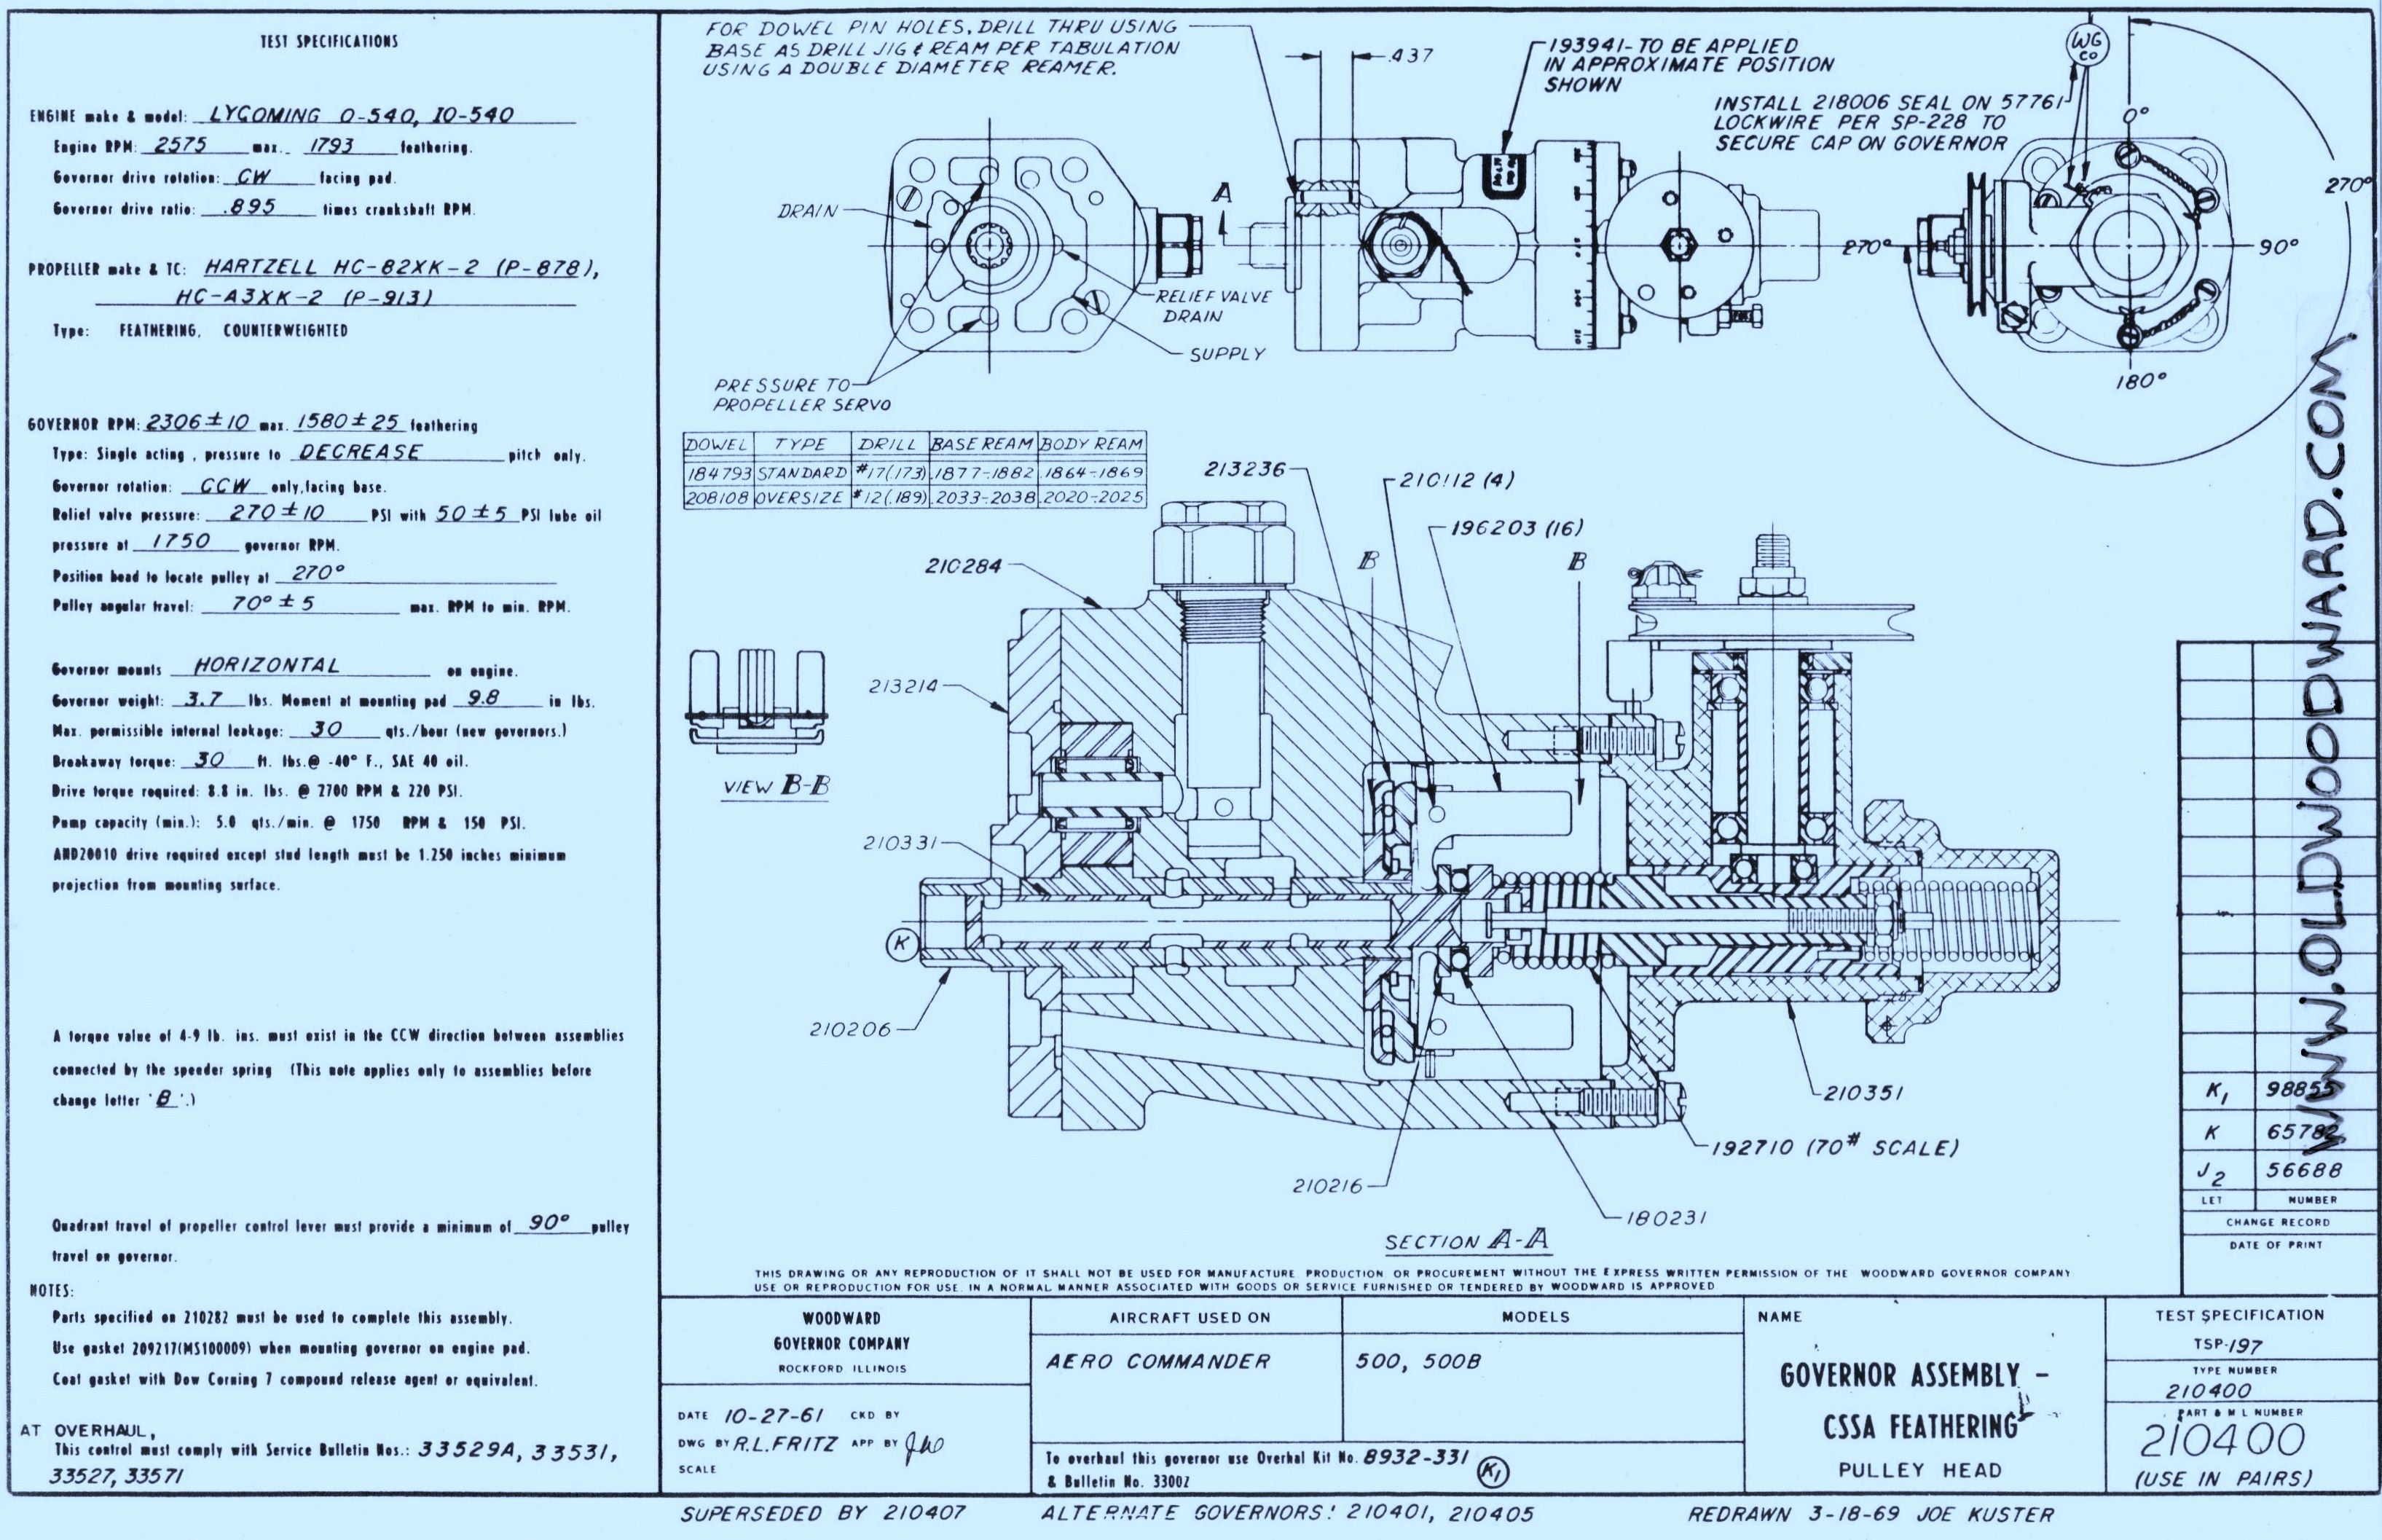 propeller schematics catalogue of schemas Allison Propeller Schematic